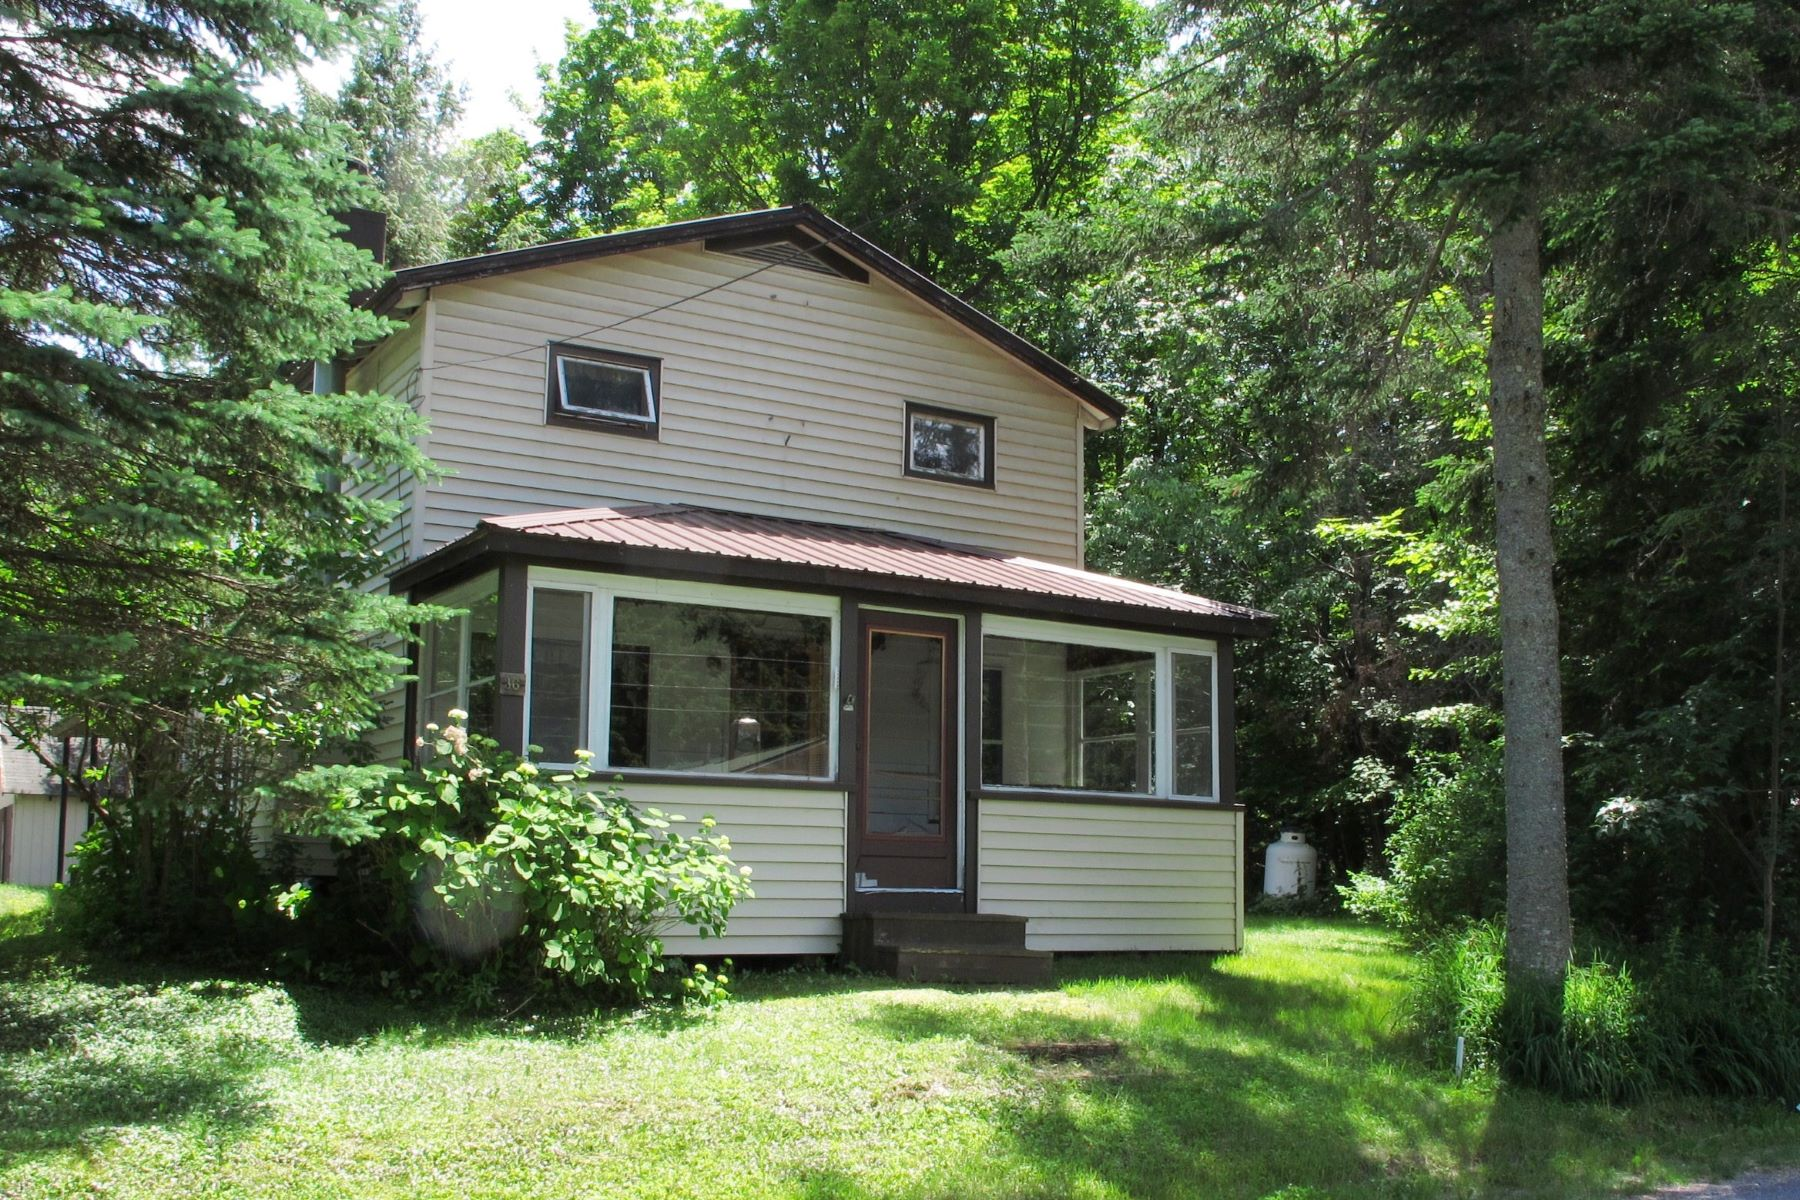 Single Family Home for Sale at Year round home close to Seventh Lake 36 Seventh Lake Rd Inlet, New York 13360 United States